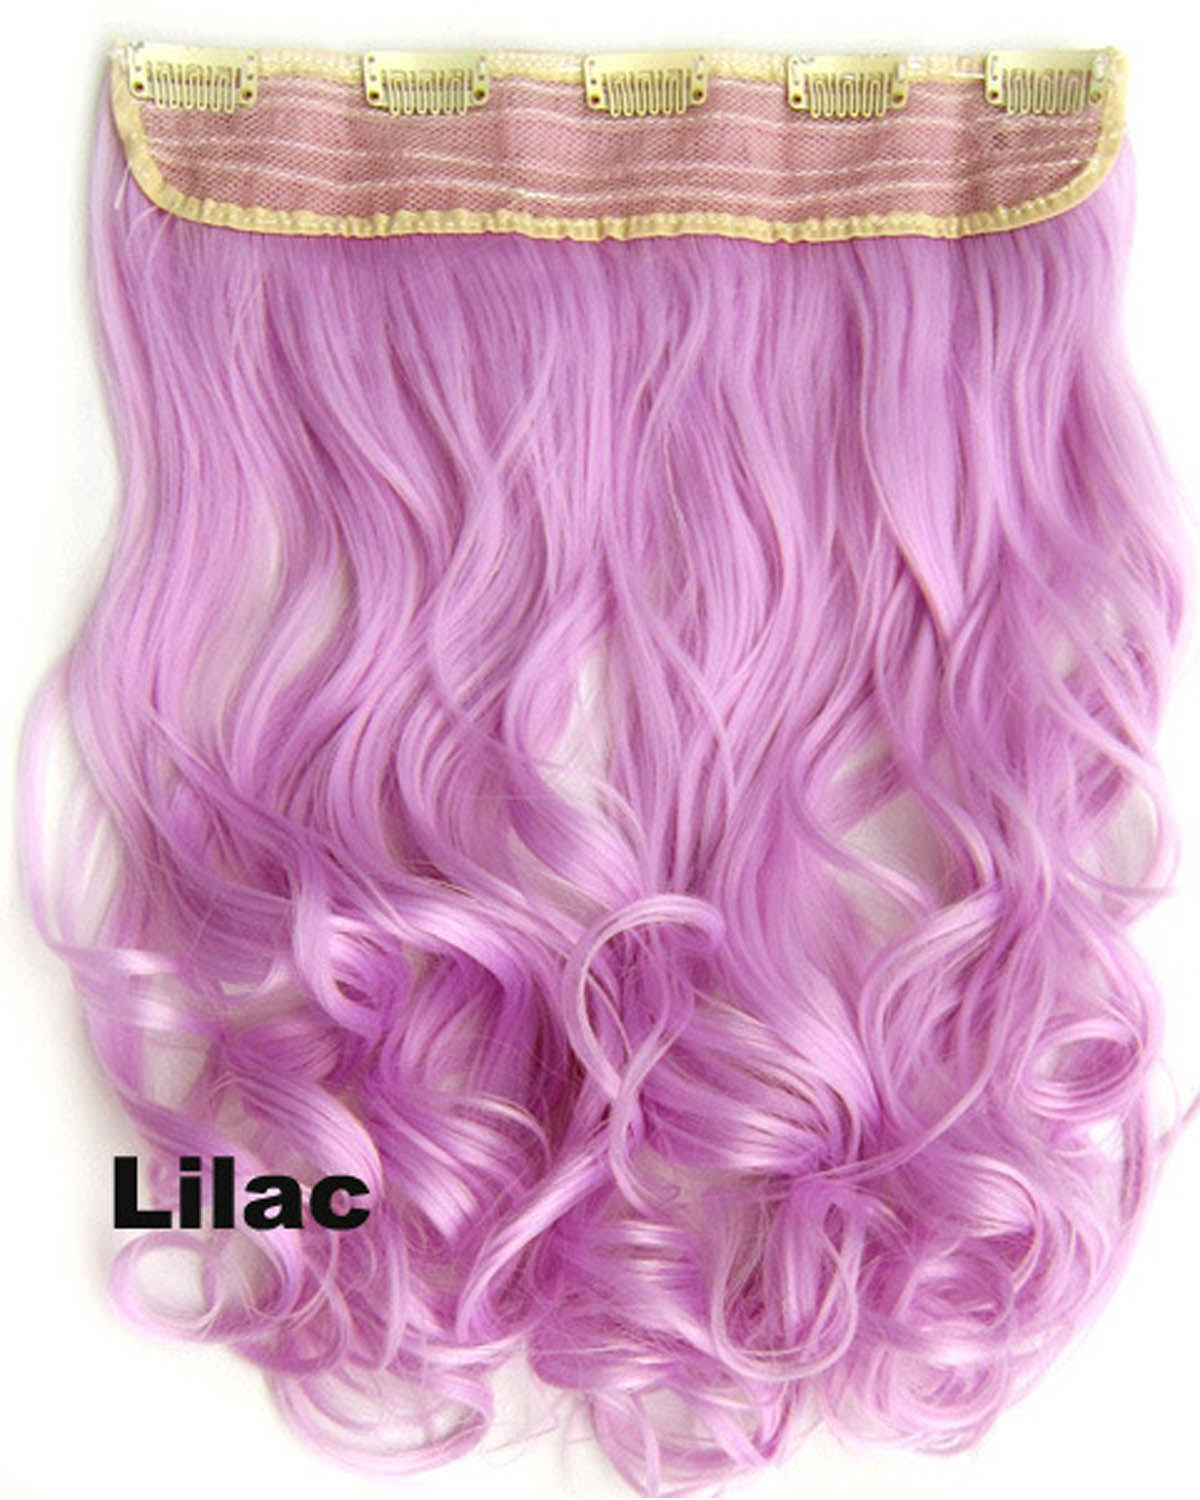 24 Inch Women Newly Body Wave Curly Long One Piece 5 Clips Clip in Synthetic Hair Extension Lilac